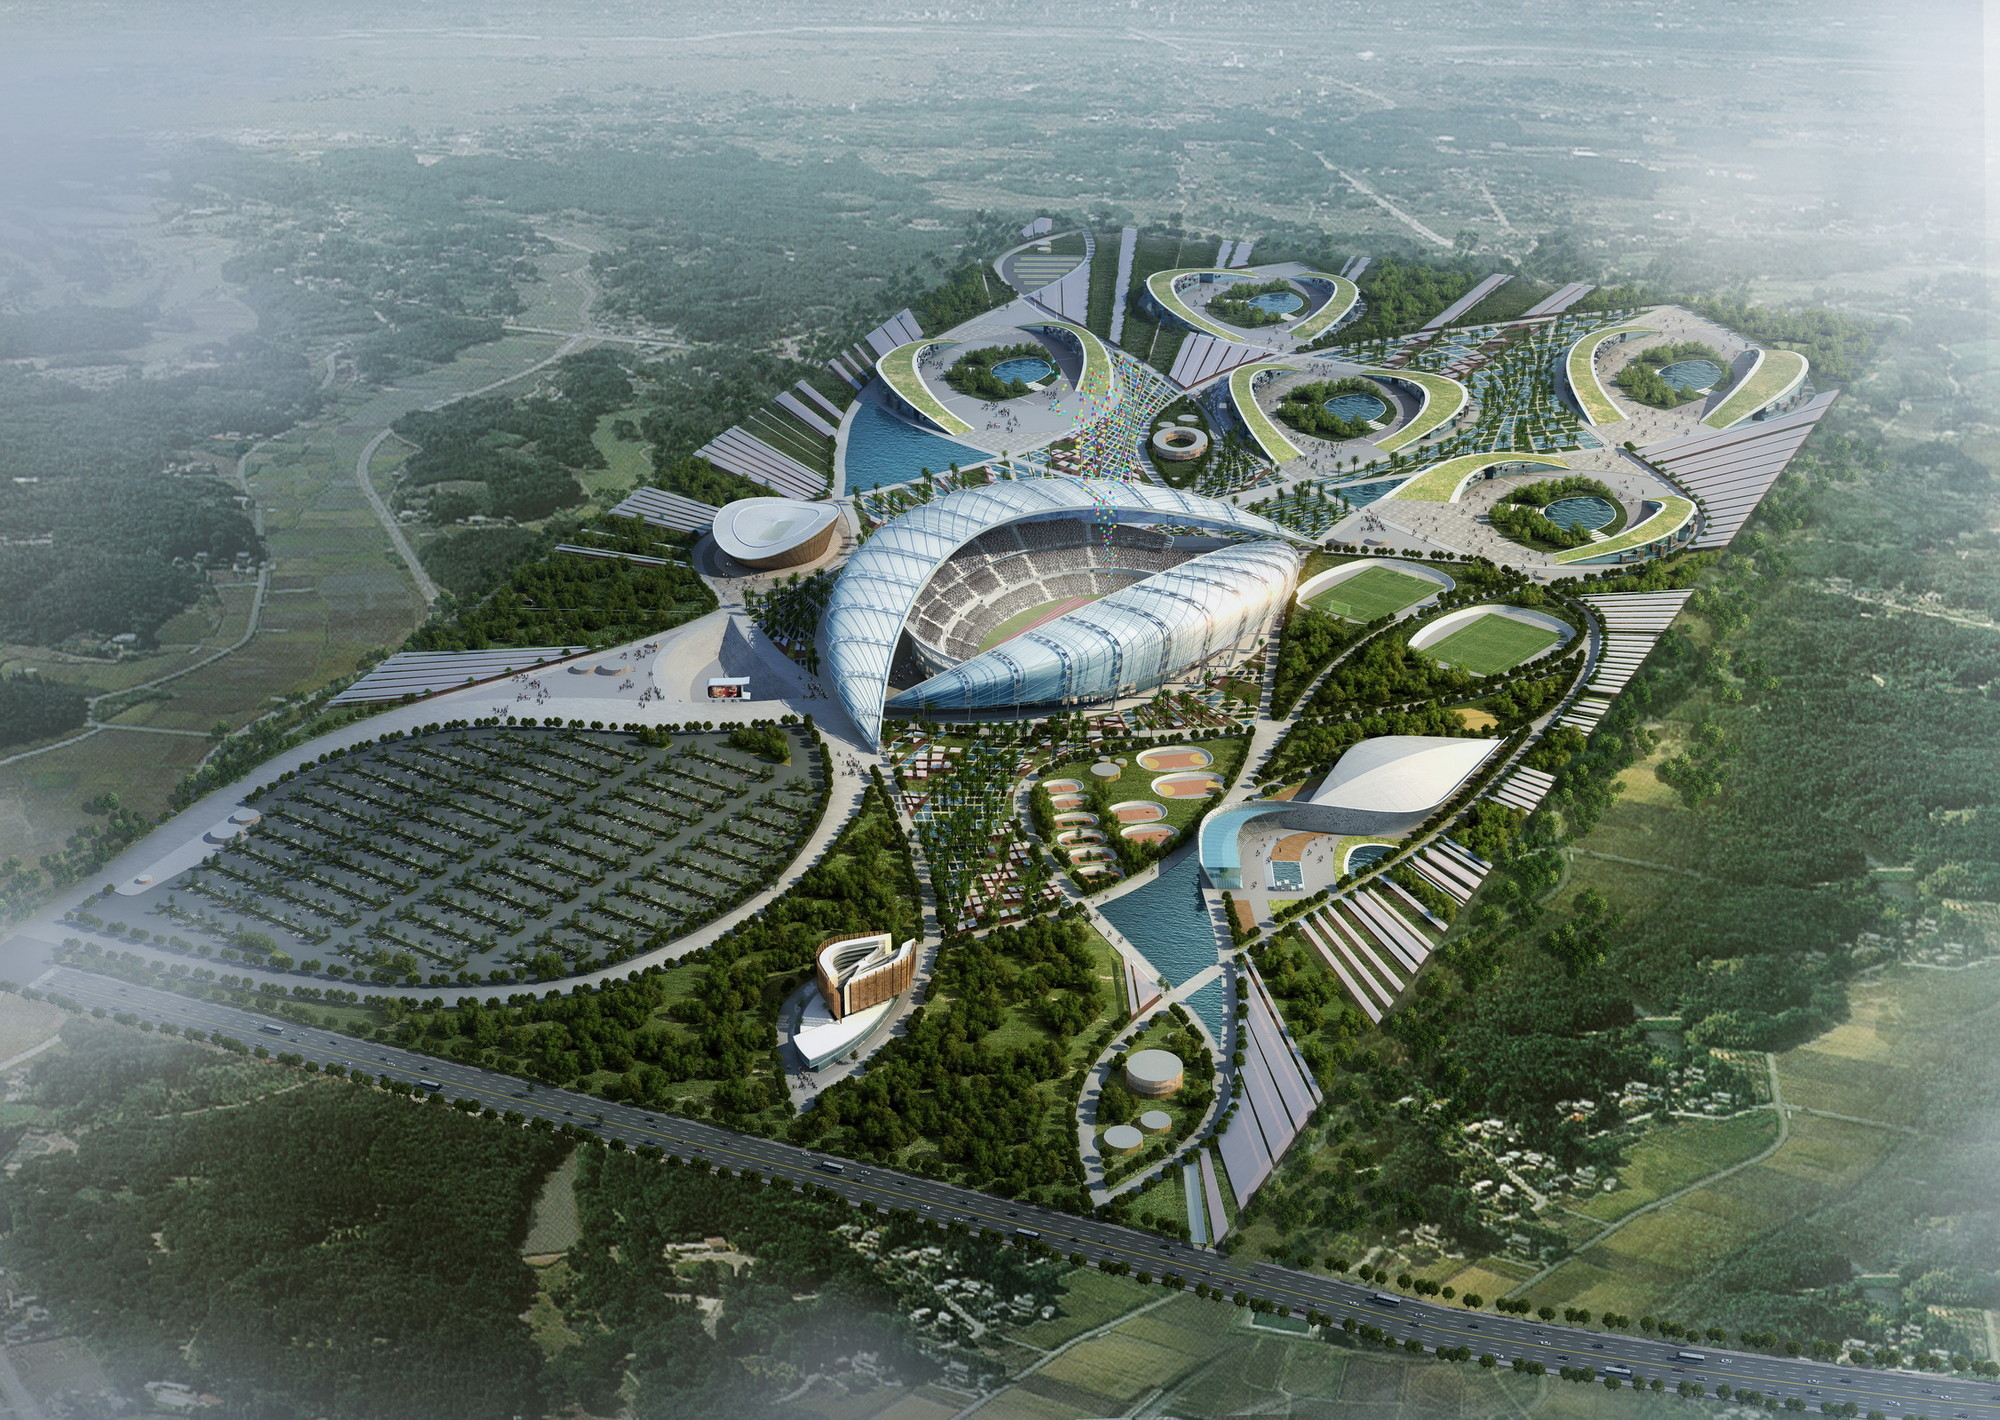 Pan African Games Masterplan Competition Entry / Group IAD